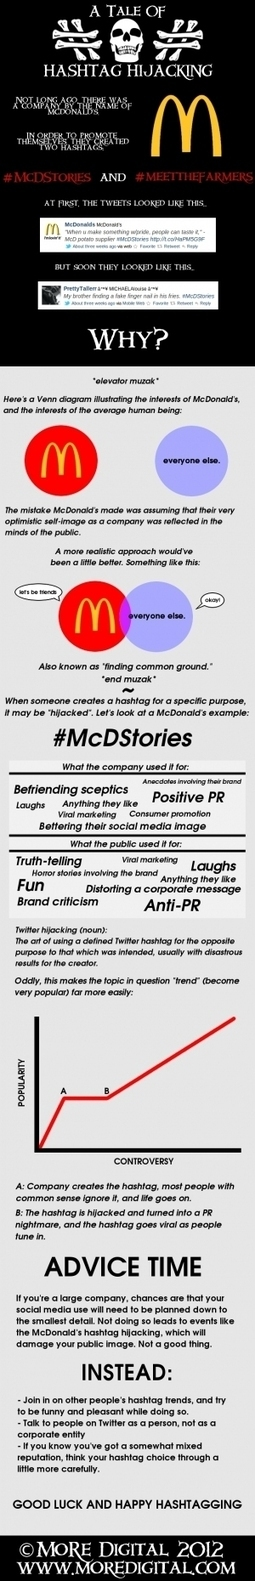 [INFOGRAPHIC] A Tale Of Hashtag Hijacking | INFOGRAPHICS | Scoop.it